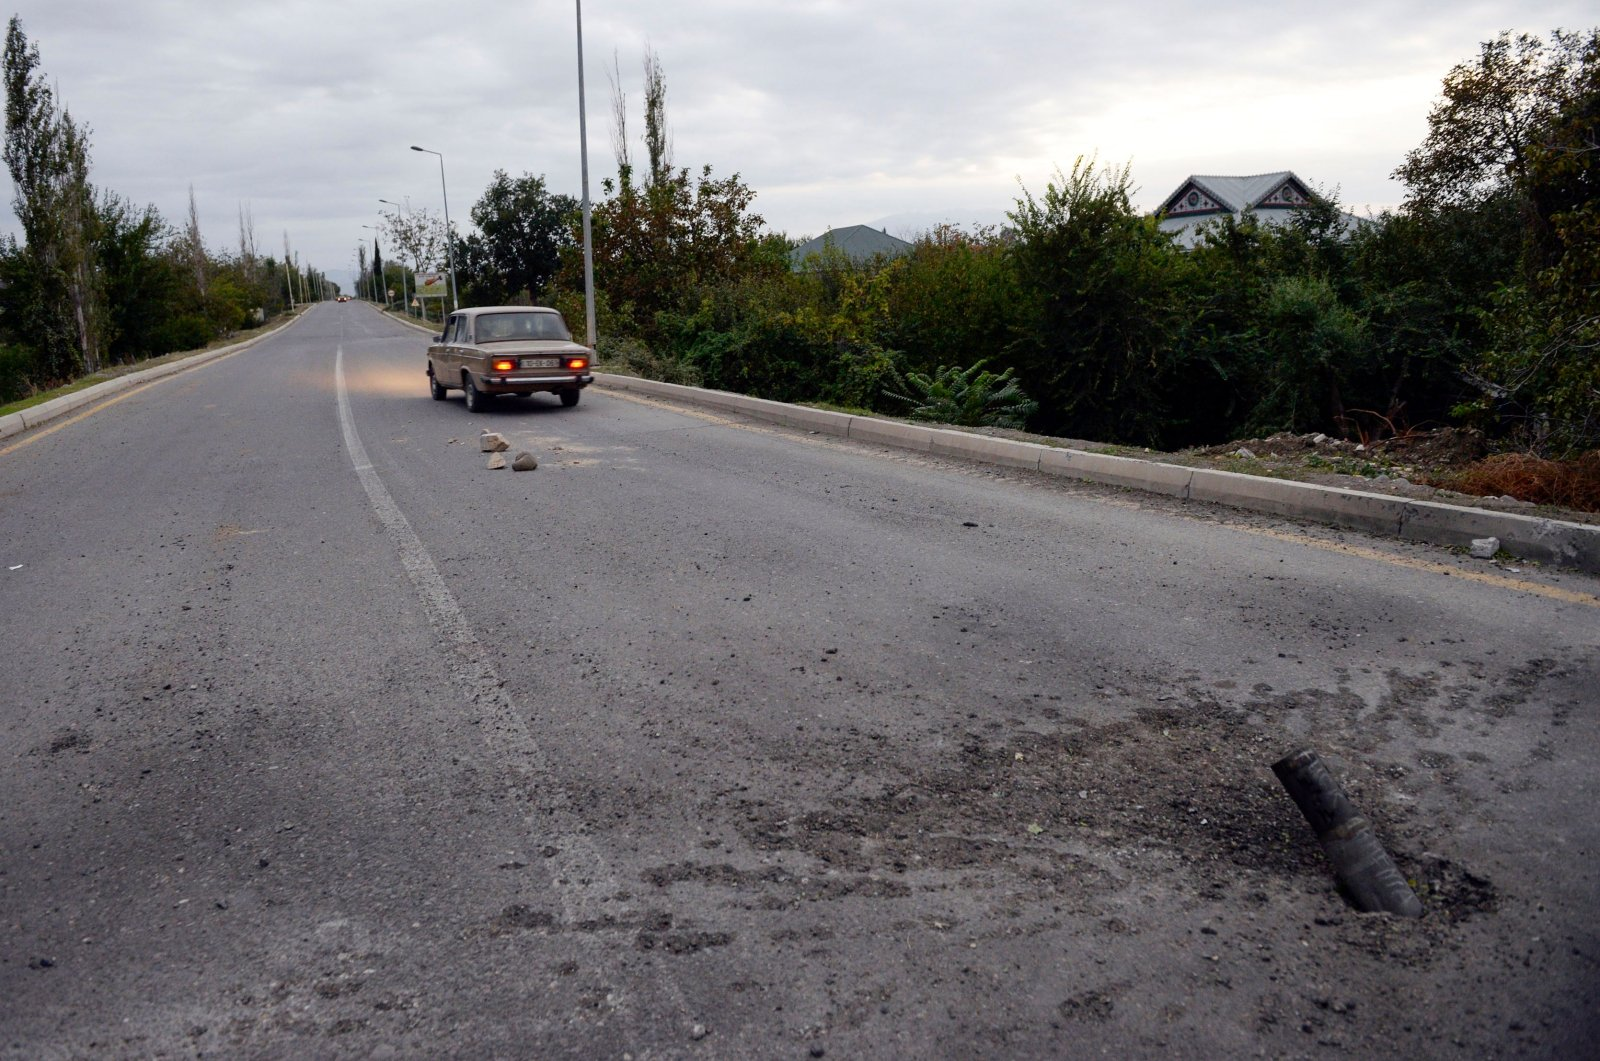 An unexploded artillery shell fired by Armenian separatists on a road on the outskirts of Tartar, Azerbaijan, Sept. 28, 2020. (AFP Photo)